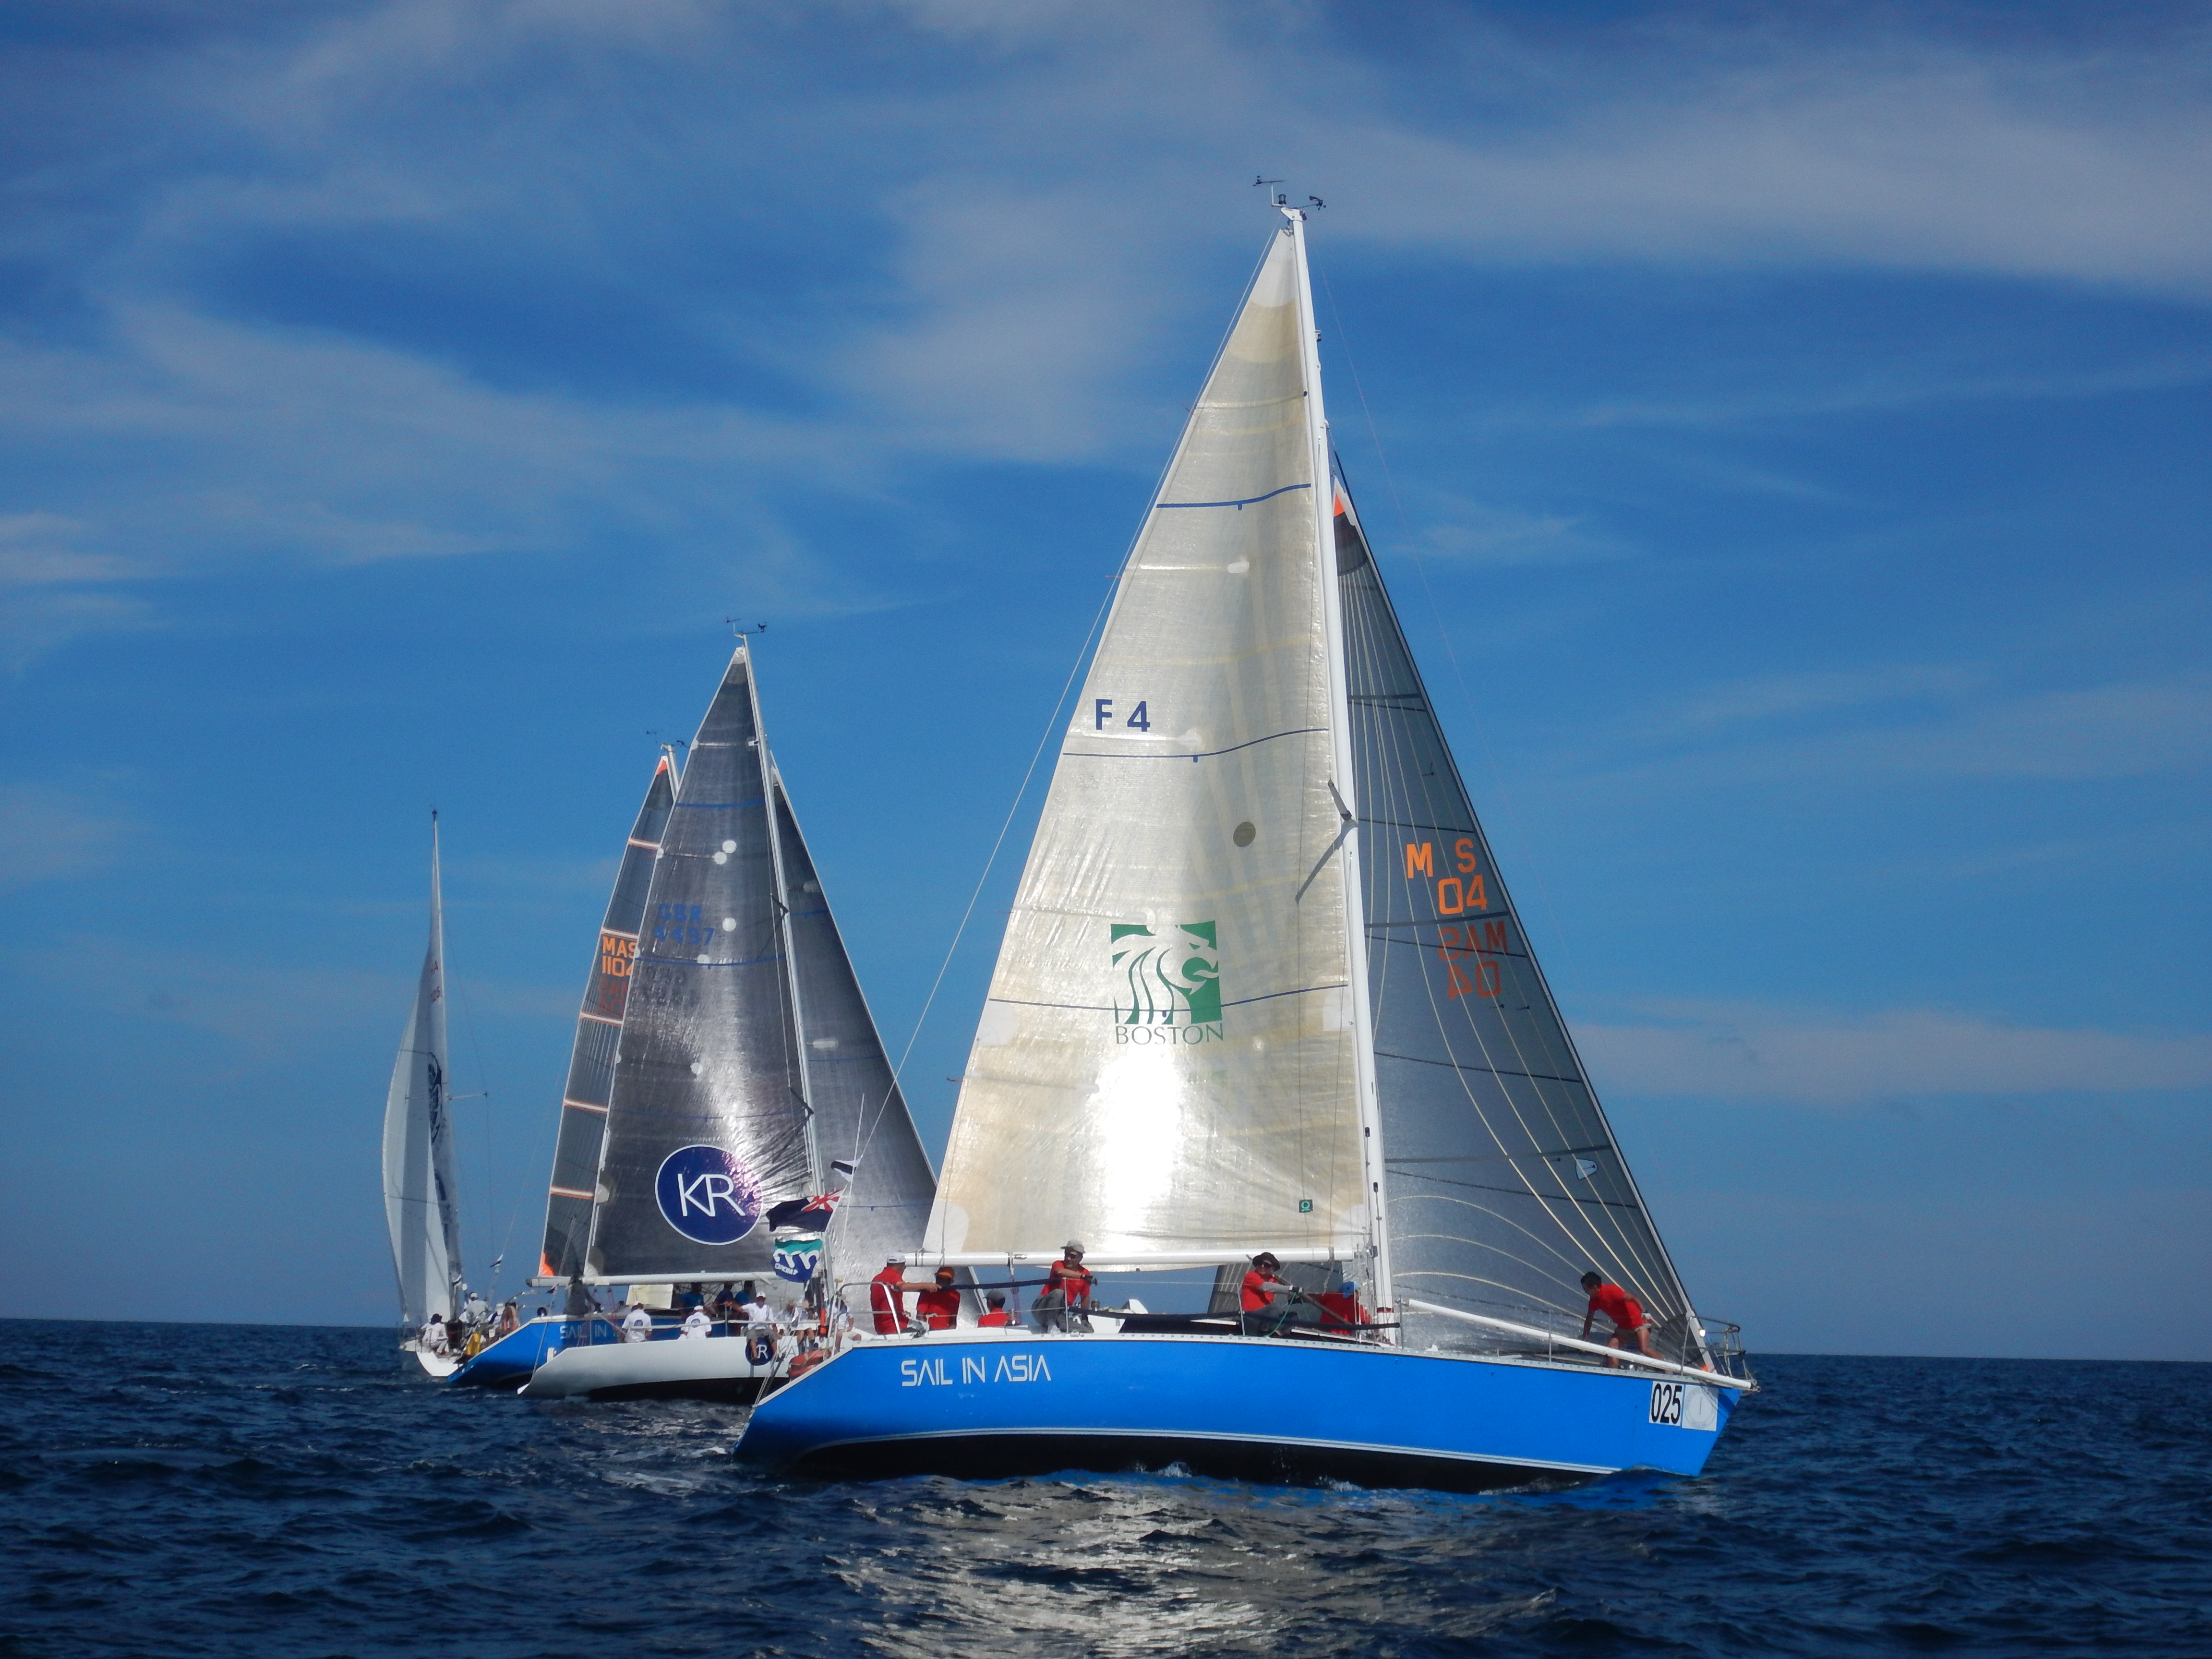 iyt yacht training courses in malaysia